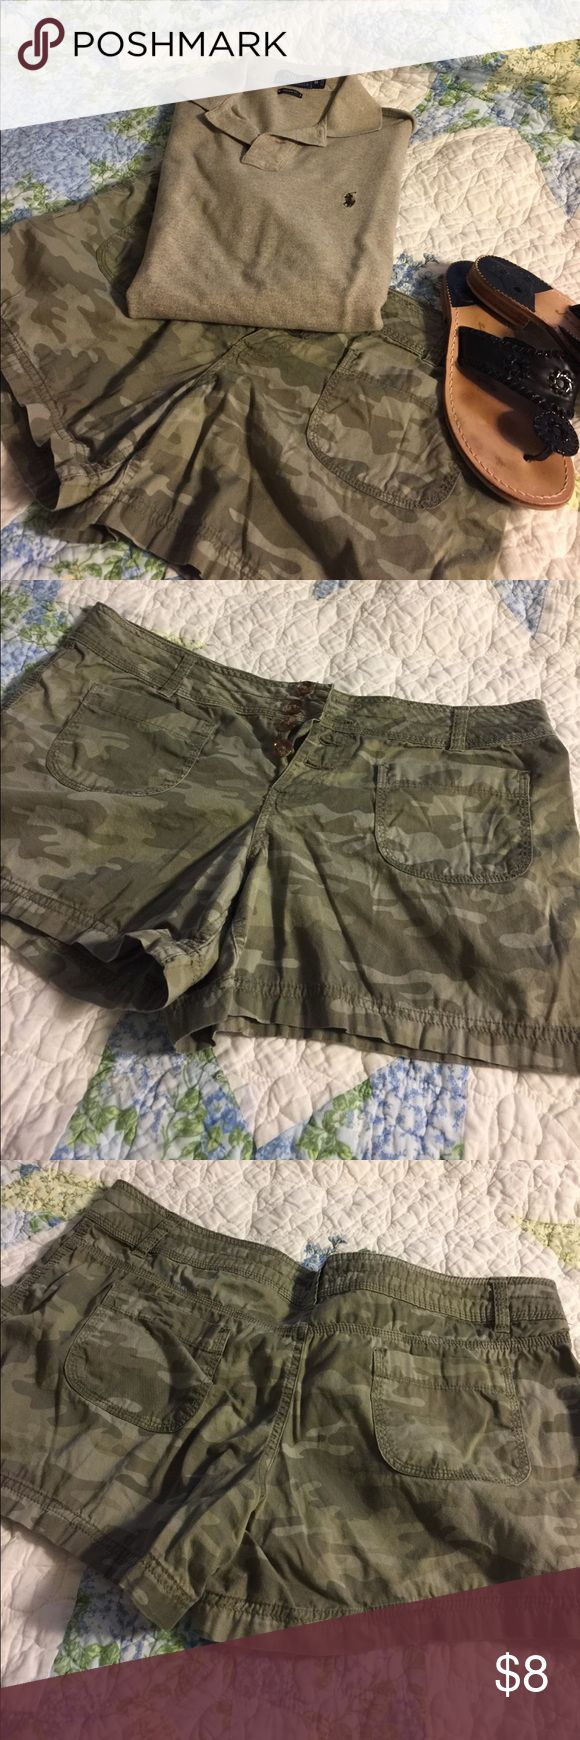 Camouflage Shorts Sz 15 Juniors Camouflage Shorts Sz 15 Juniors.  Great used condition. See last photo, shorts can be rolled and buttoned on the side. See all photos for size confirmation, care instructions, materials and measurements. Thanks for looking. I consider all reasonable offers. Don't forget to bundle and save. Shorts